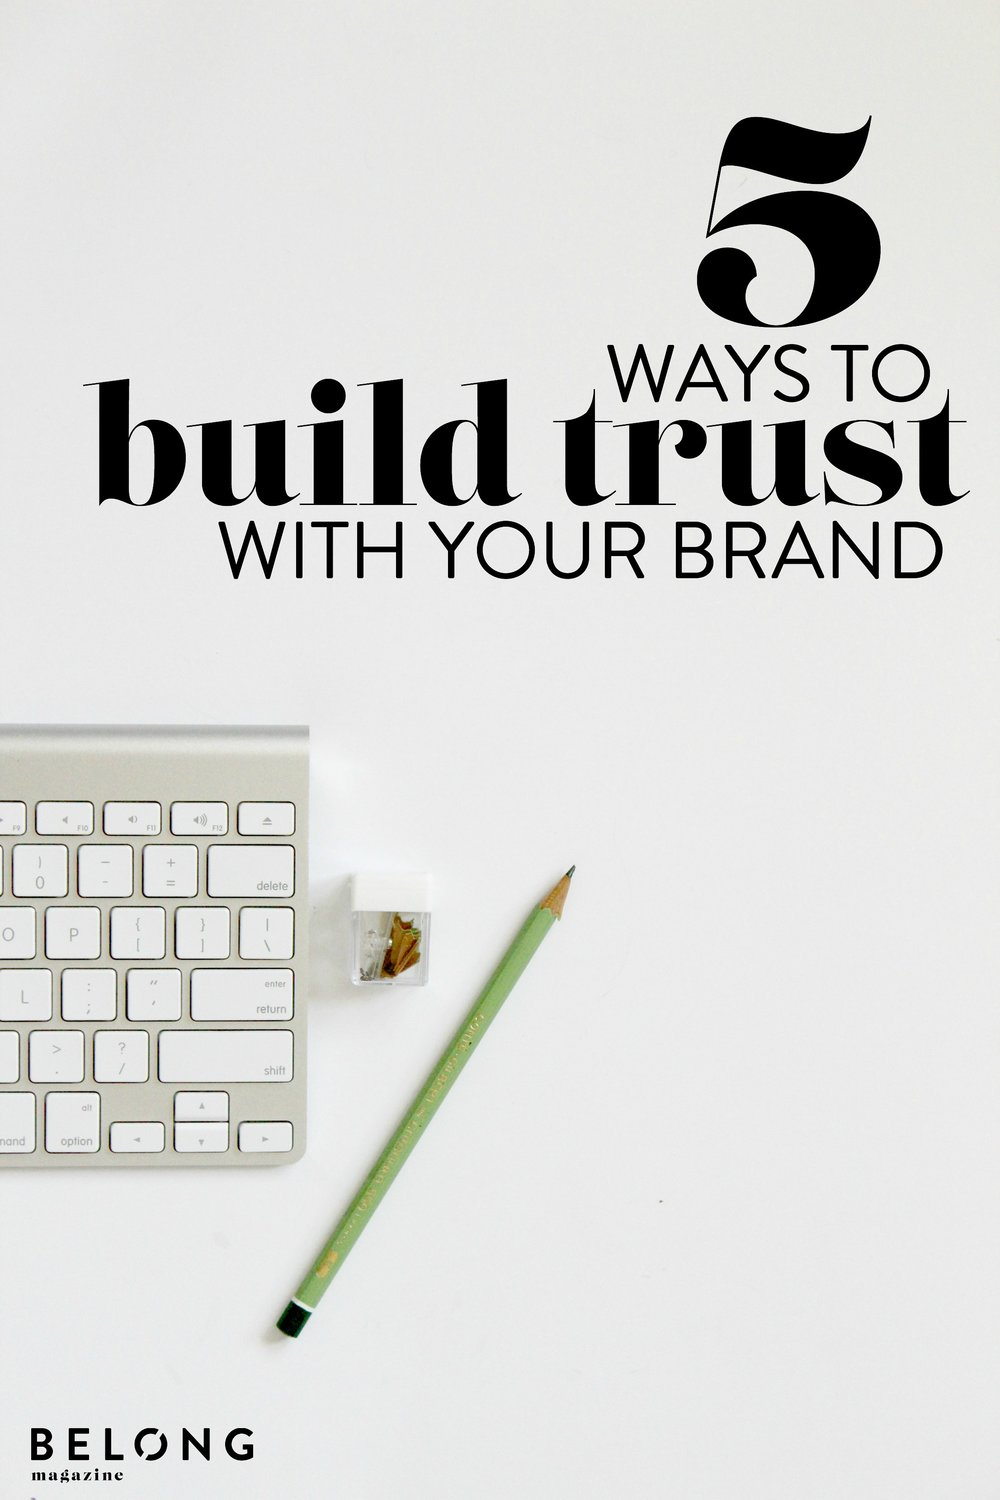 5 ways to build trust with your brand as featured on the belong magazine blog - for female entrepreneurs and creatives